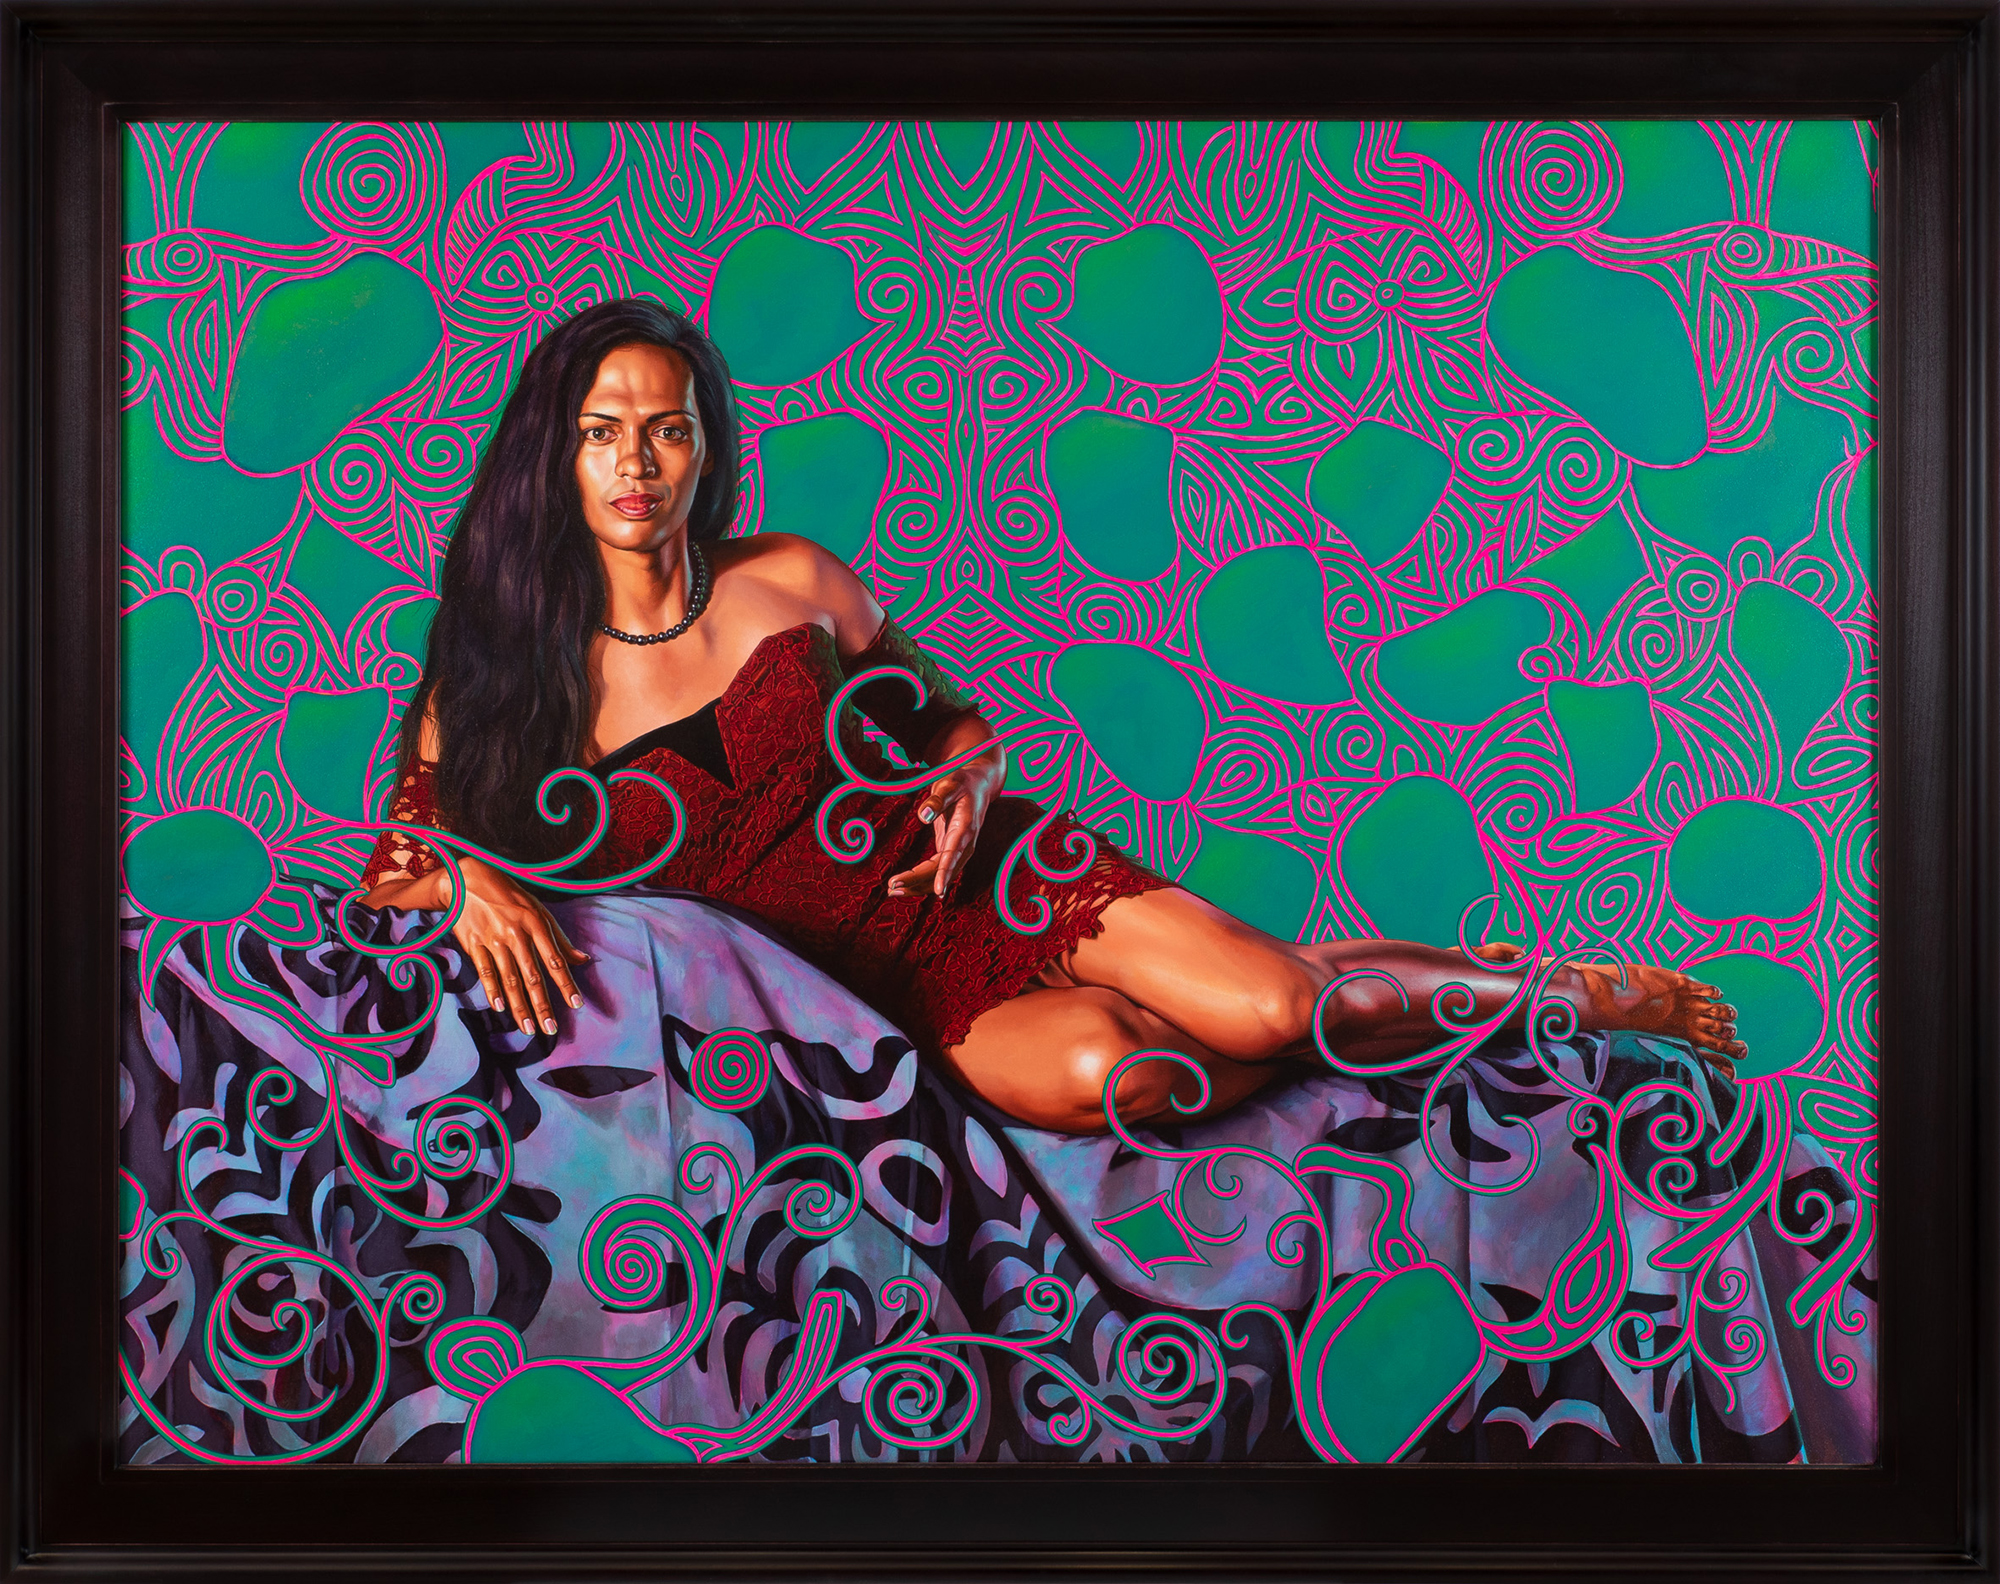 Detailed Portraits of Tahiti's Third Gender by Kehinde Wiley Challenge Gauguin's Problematic Depictions